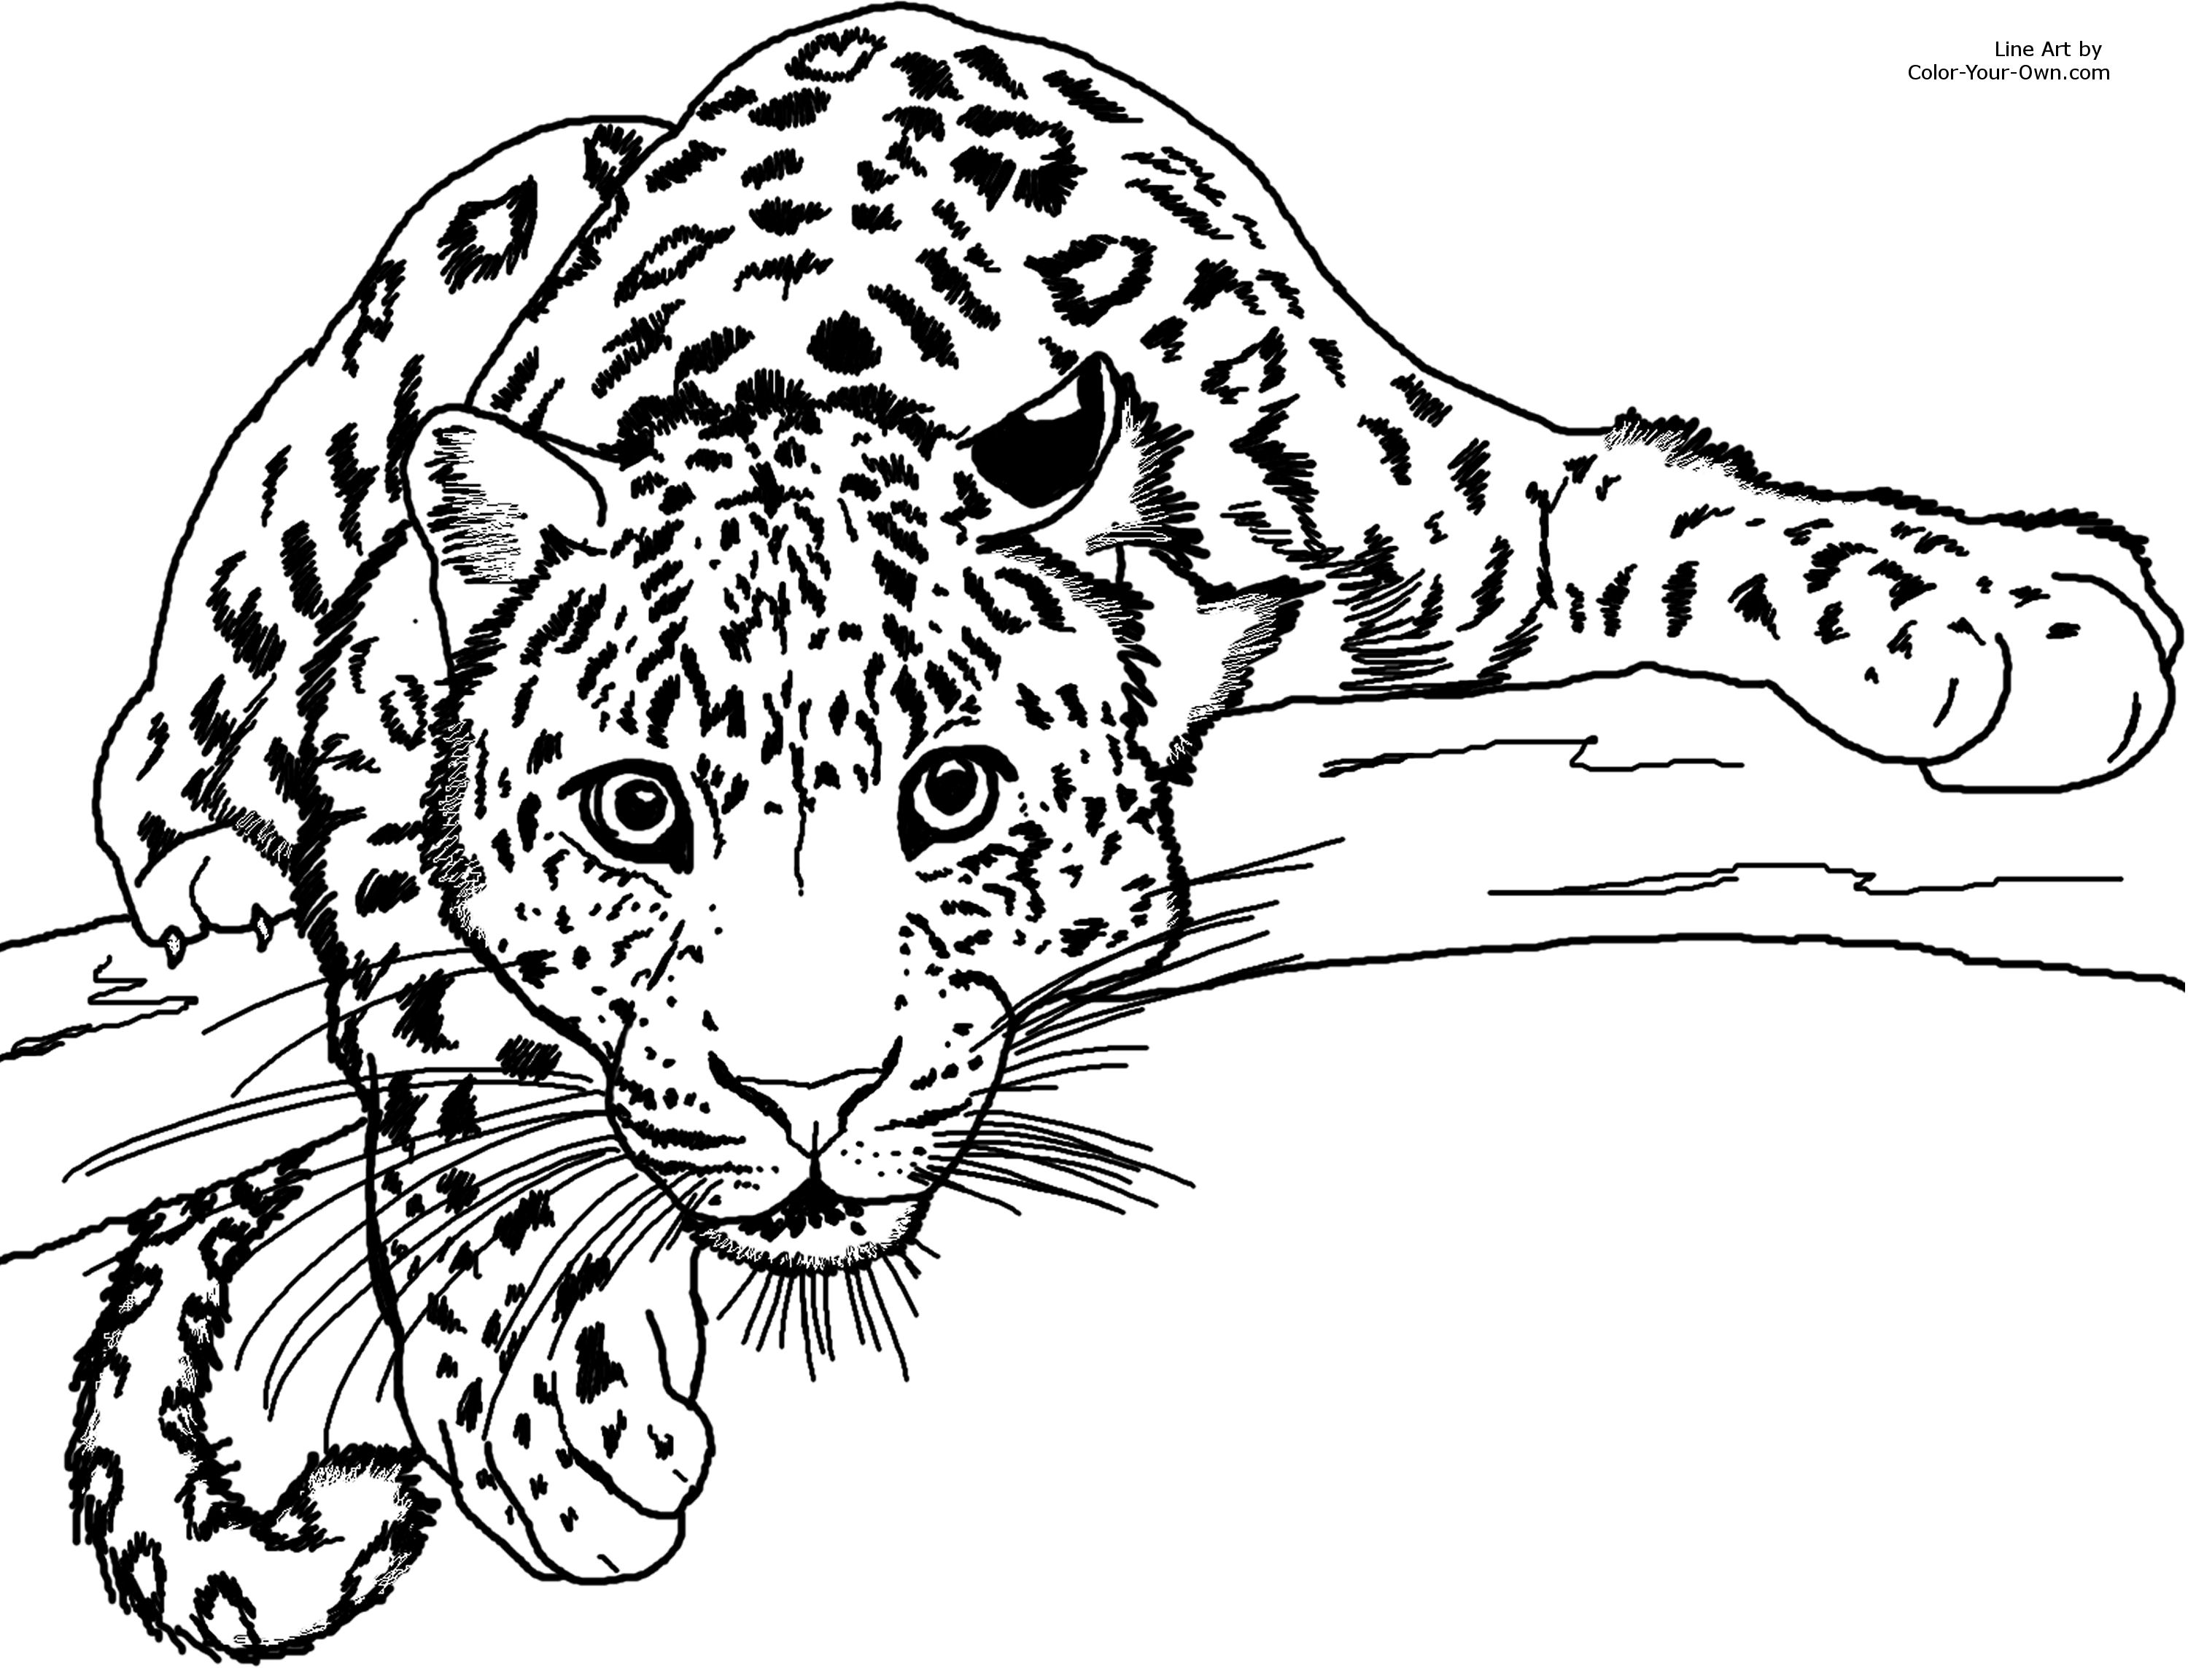 Jaguar Coloring Pages To Download And Print For Free